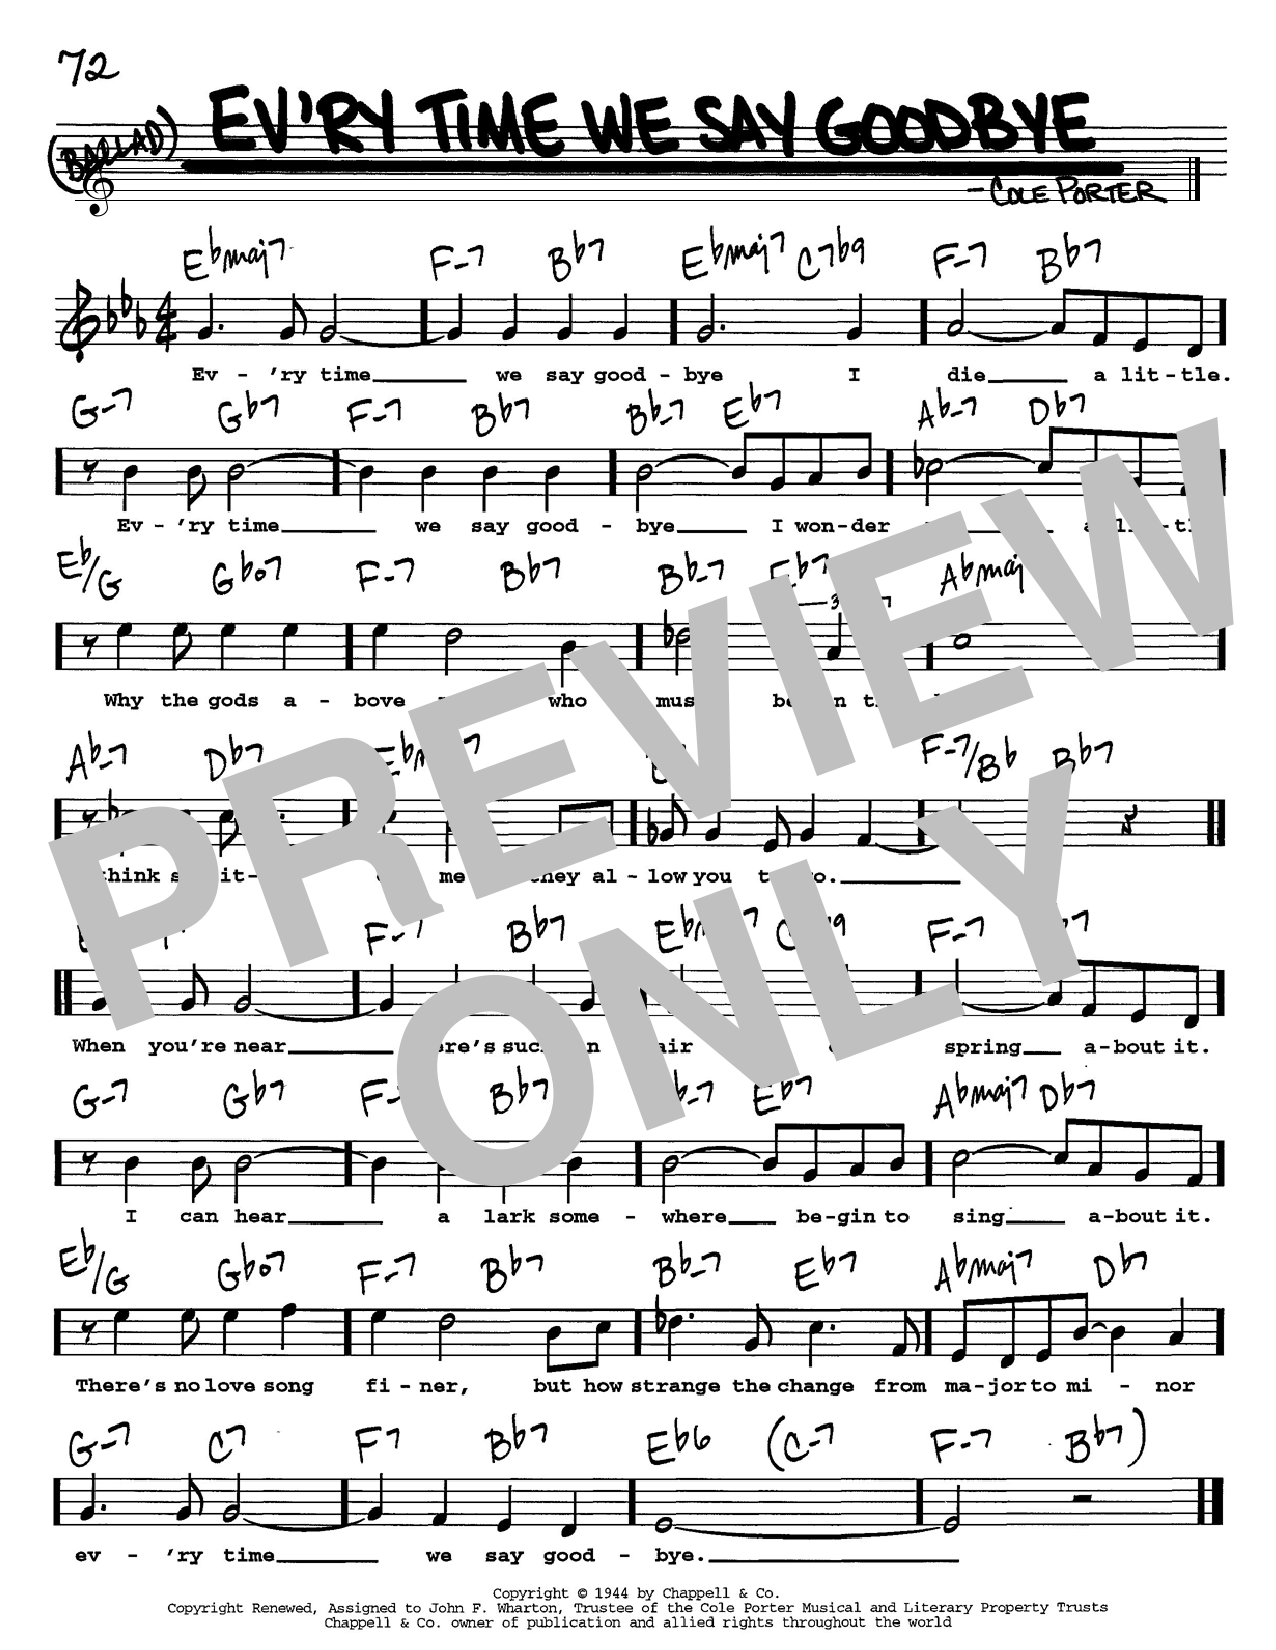 Cole Porter Ev'ry Time We Say Goodbye sheet music notes and chords